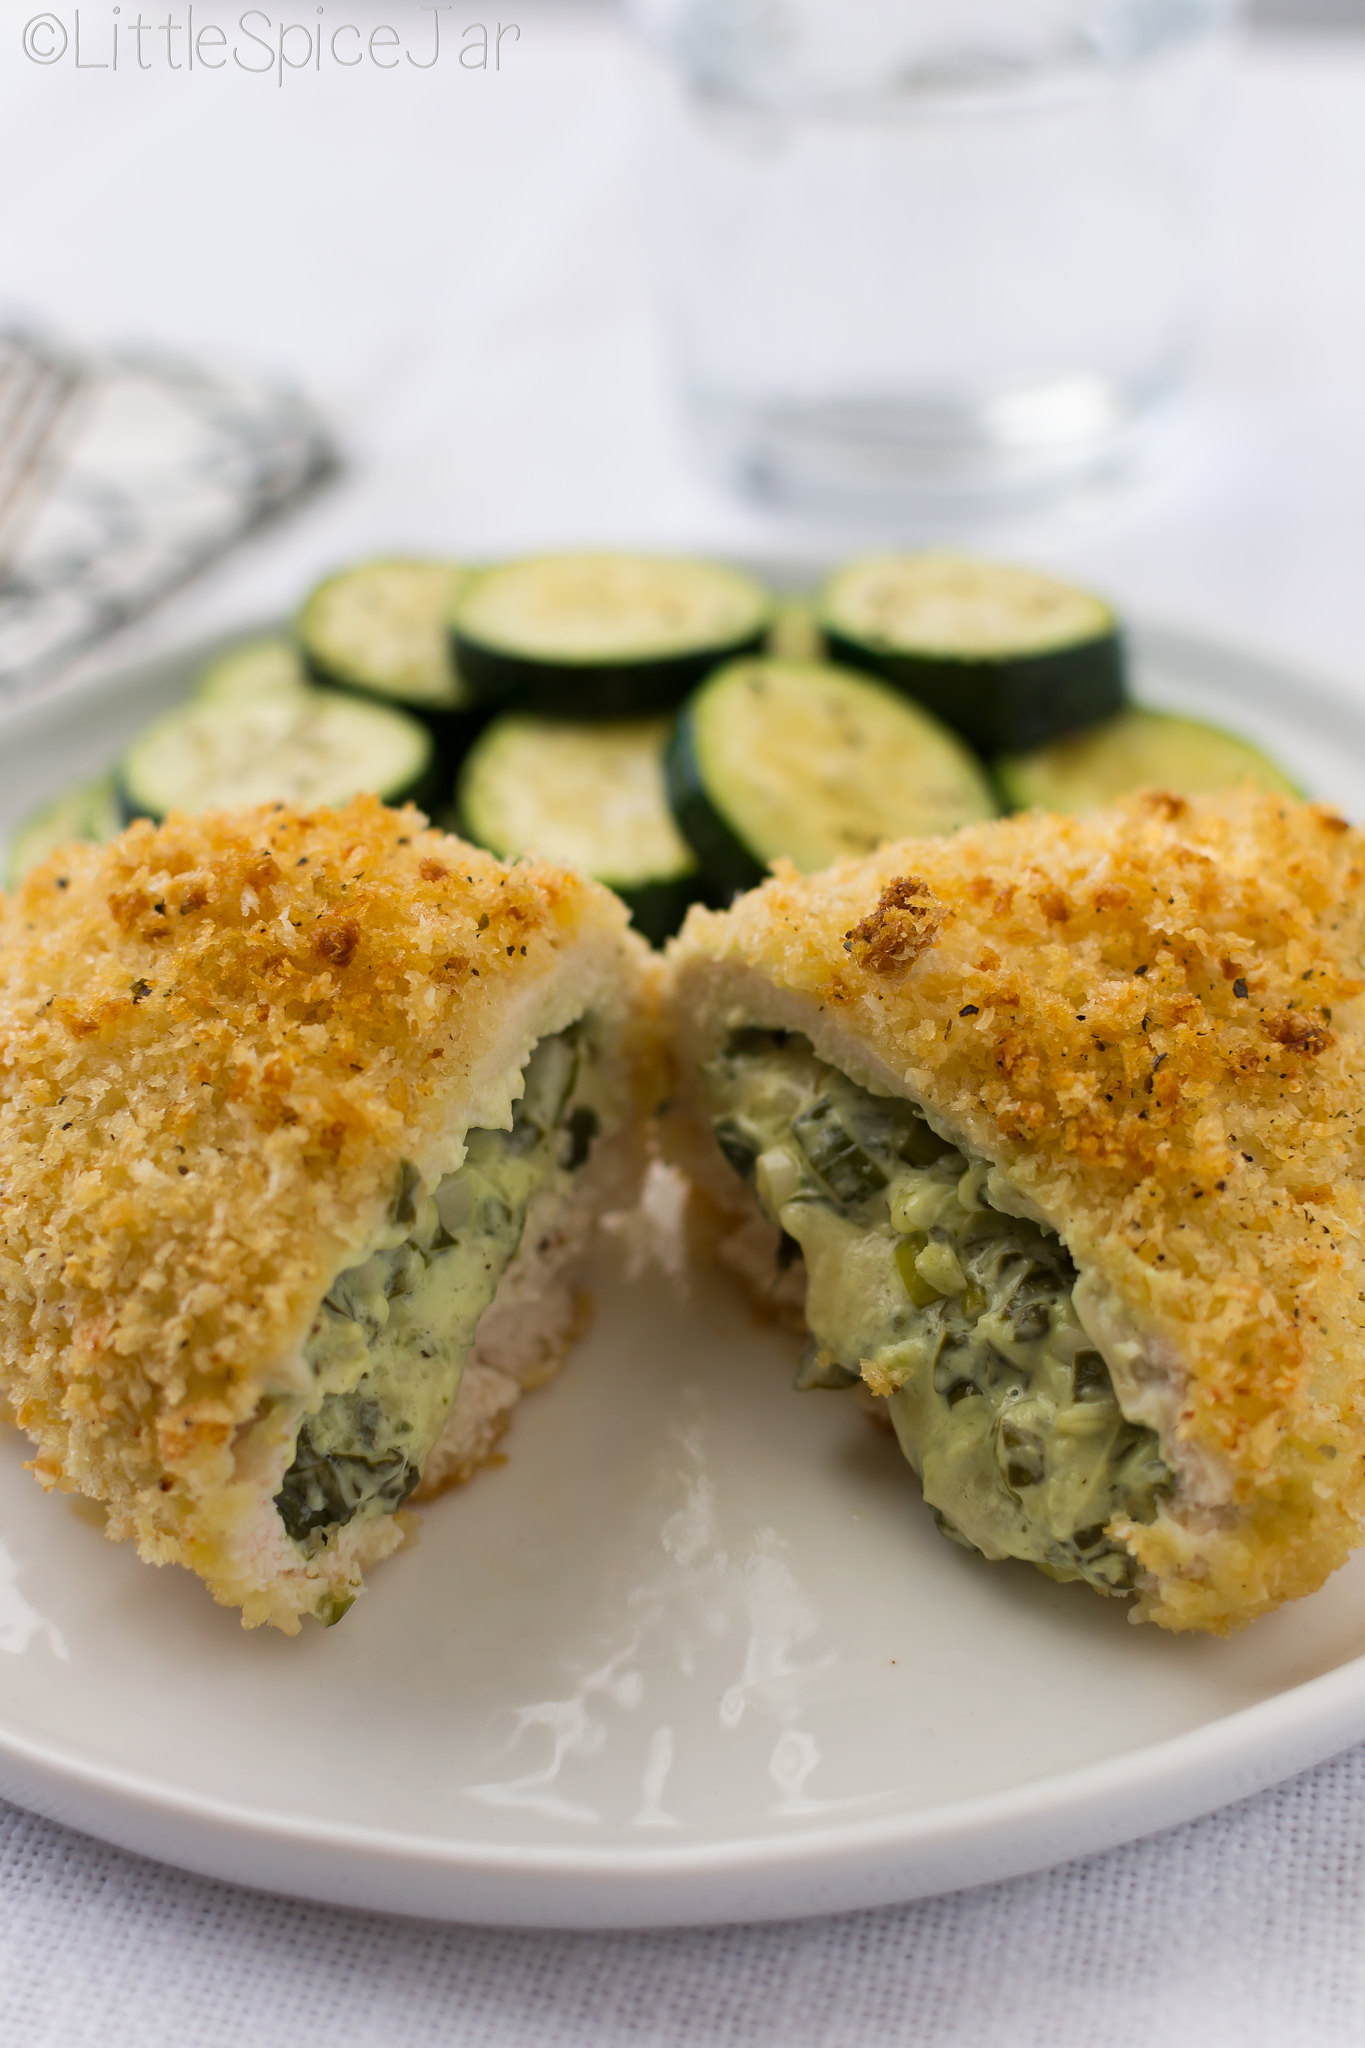 Spinach Cream Cheese Stuffed Chicken Breast -  loaded with scallions, cream cheese, and lots of spinach! #stuffedchickenbreast #chickendinner #stuffedchicken | Littlespicejar.com